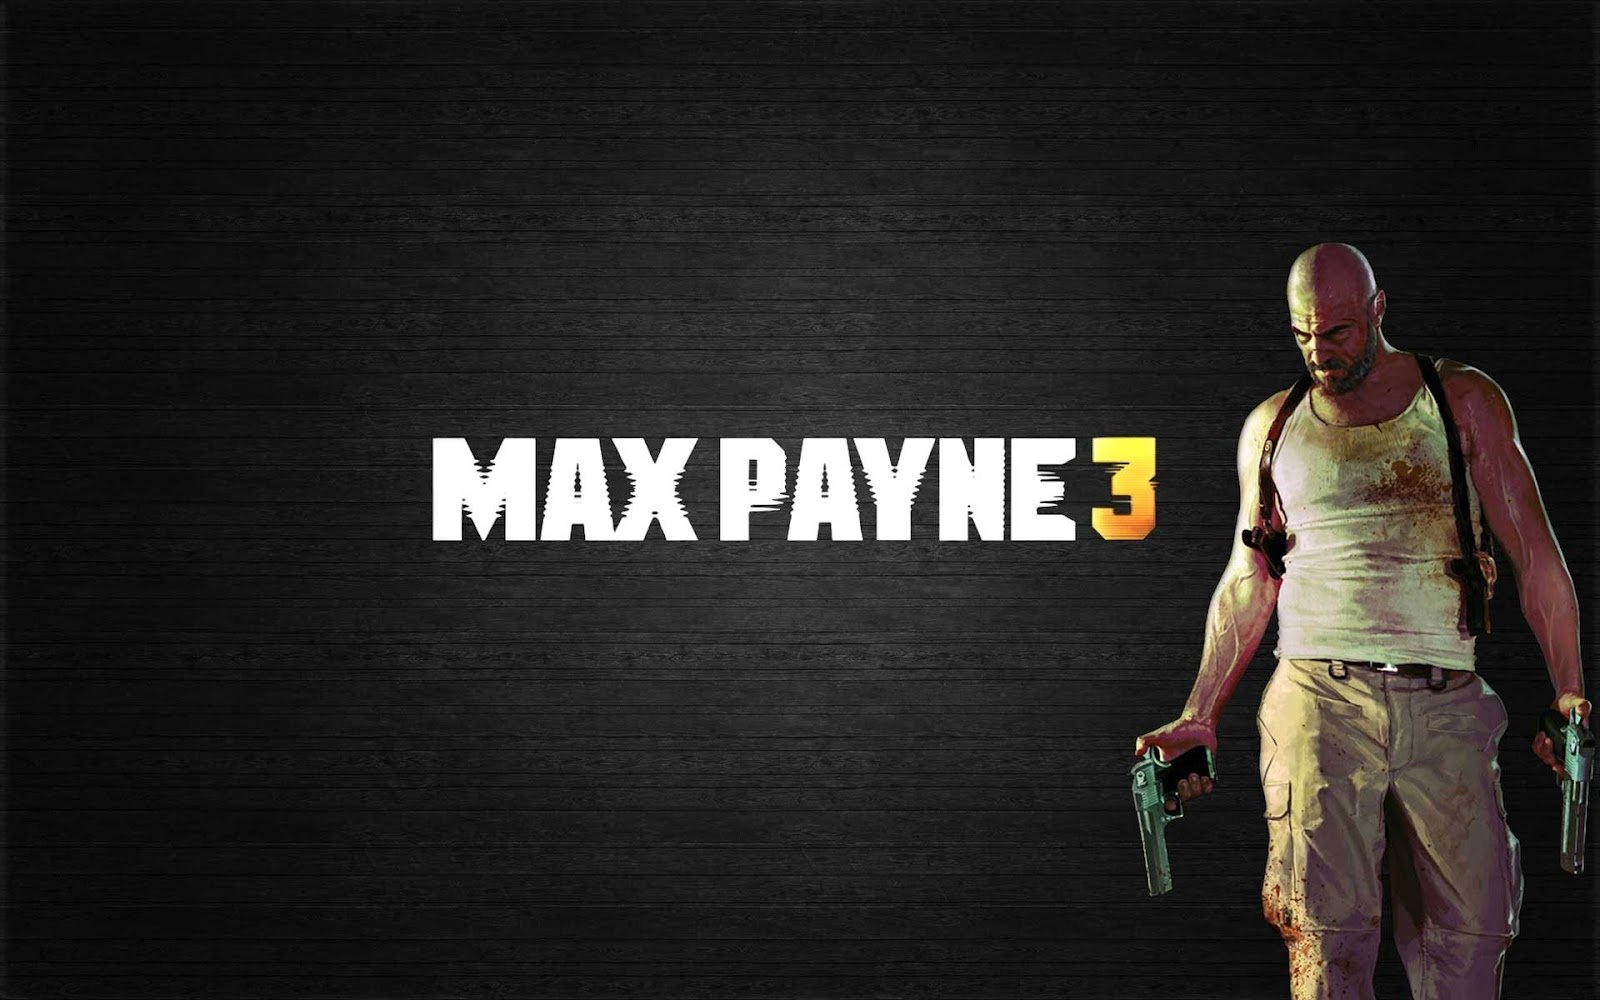 Max Payne 3 Wallpapers and Theme for Windows 7   extreme 7 1600x1000